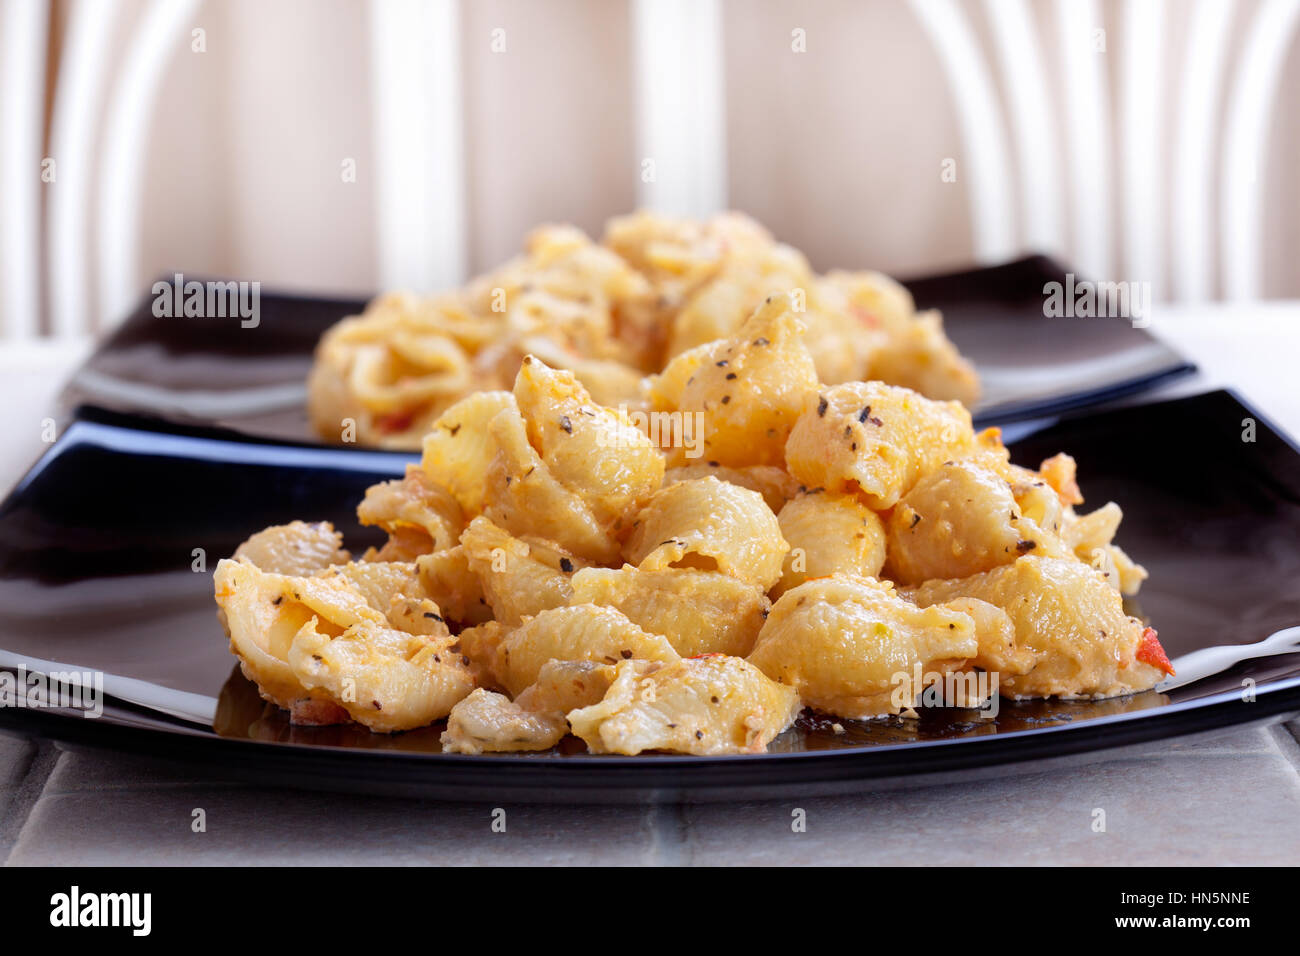 pasta on a dark plate on the table - Stock Image